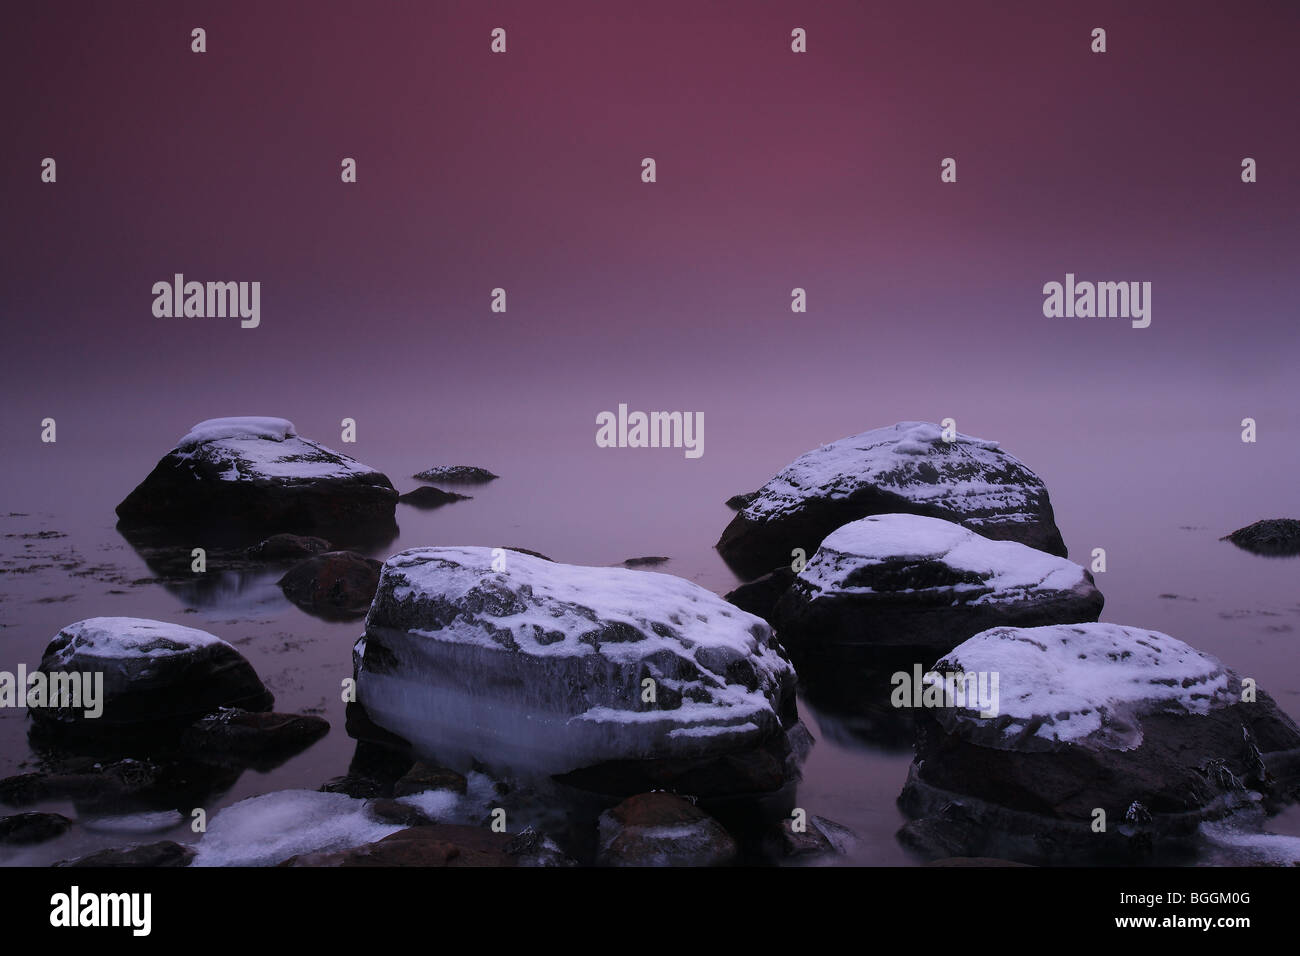 Icy rocks by the Oslofjord at Larkollen in Rygge kommune, Østfold fylke, Norway. - Stock Image